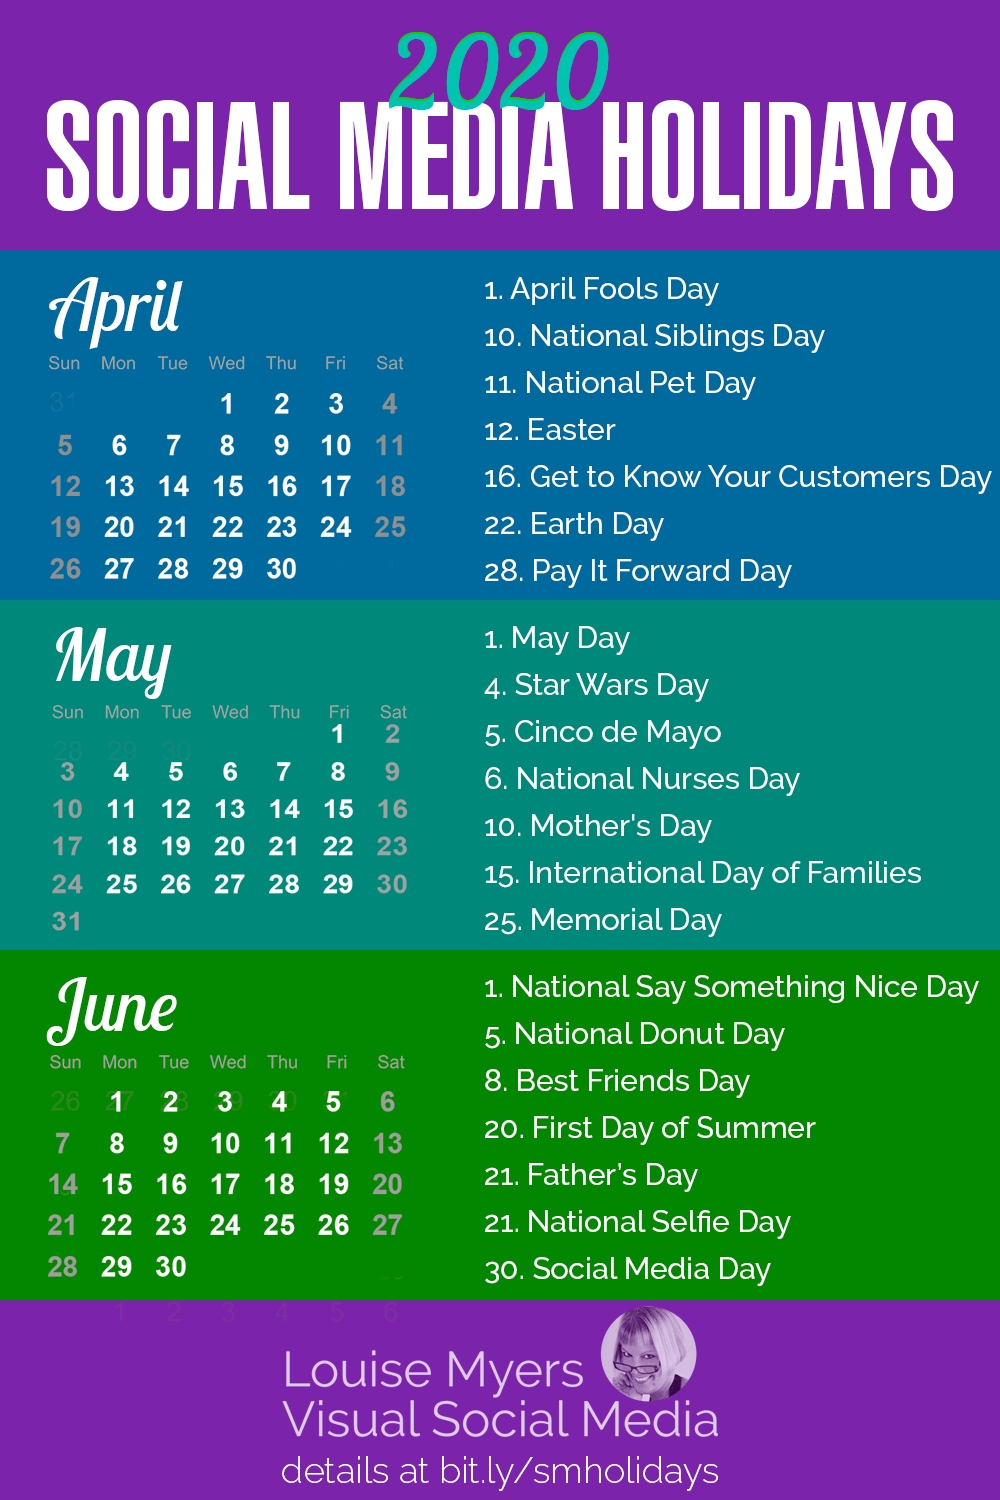 84 Social Media Holidays You Need In 2020: Indispensable! with regard to Special Days In The Business Calendar 2020